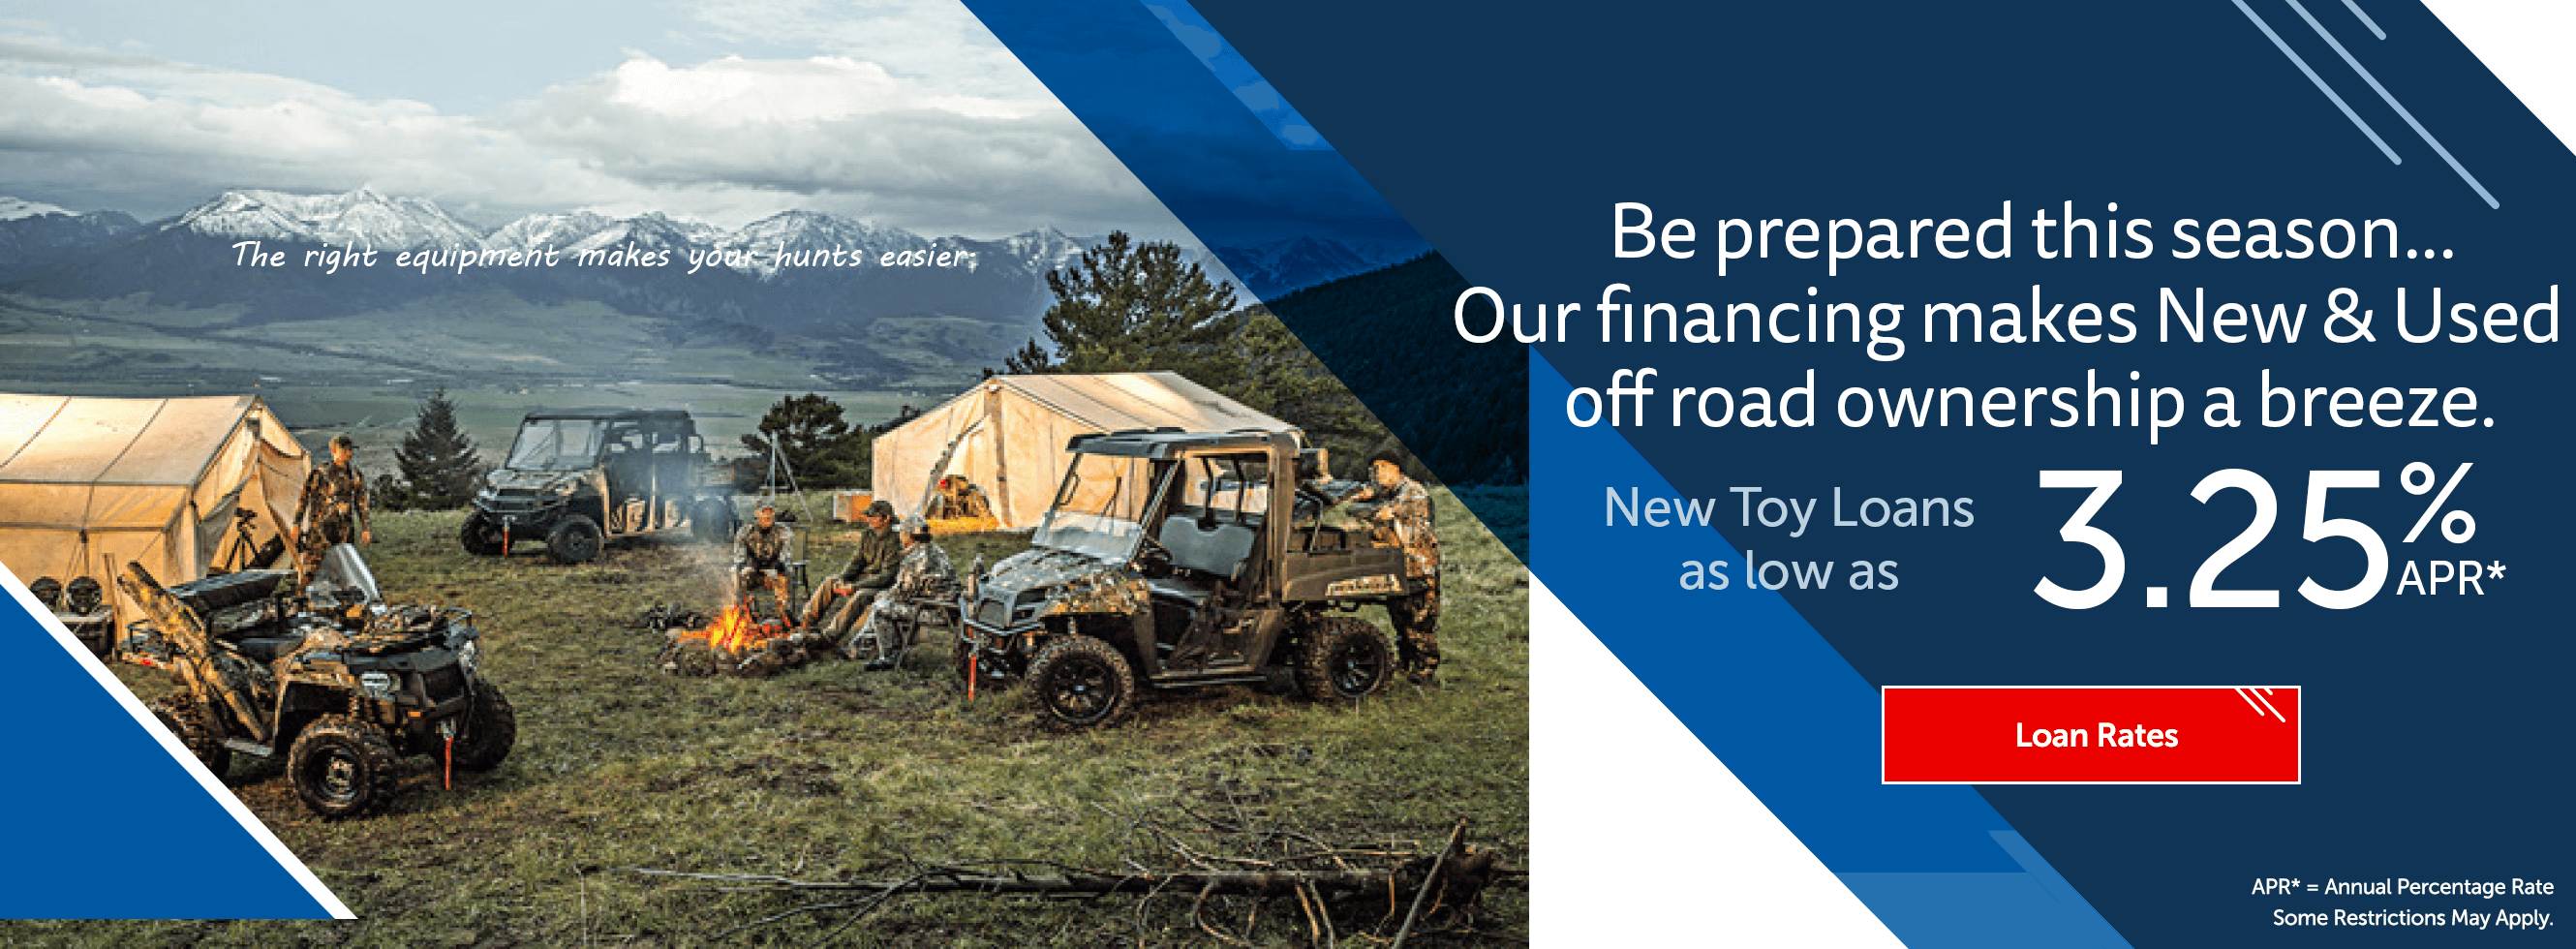 Be prepared this season... Our financing makes new & used off road ownership a breeze.